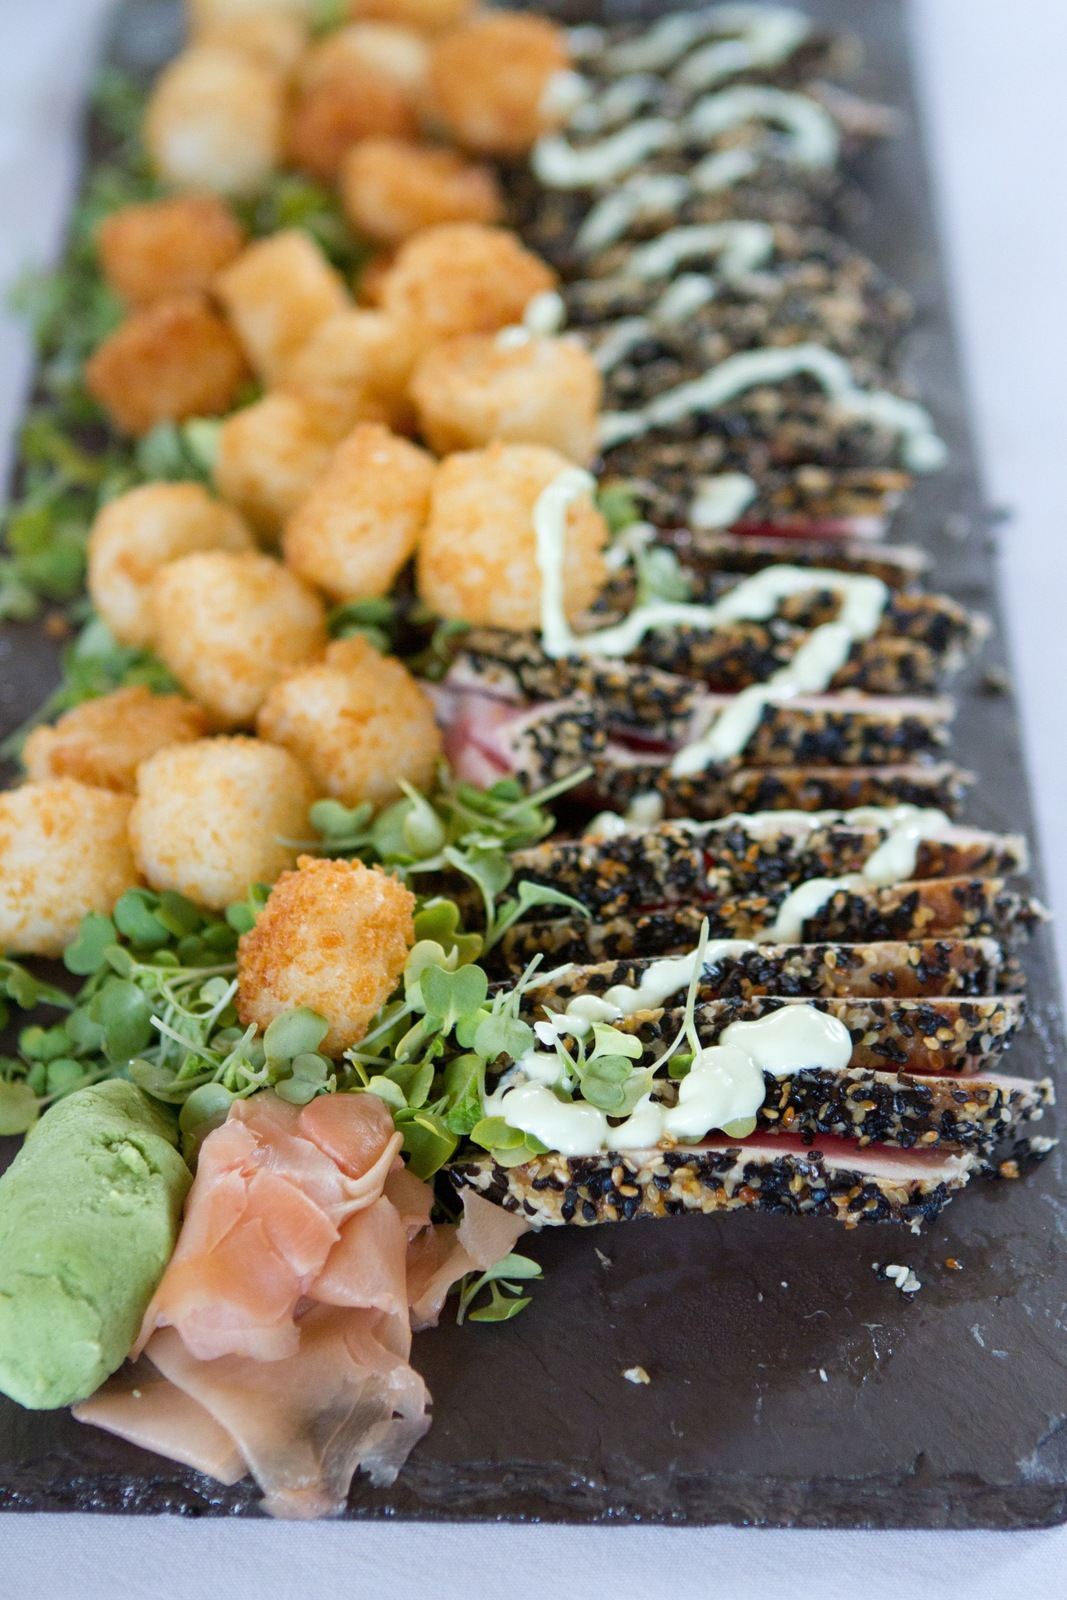 Wedding Brunch Reception - Ahi Tuna Tataki and Mirin Mini Rice Cakes with Wasabi Drizzle and Pickled Ginger - Photo Courtesy of Brian Samuels Photography